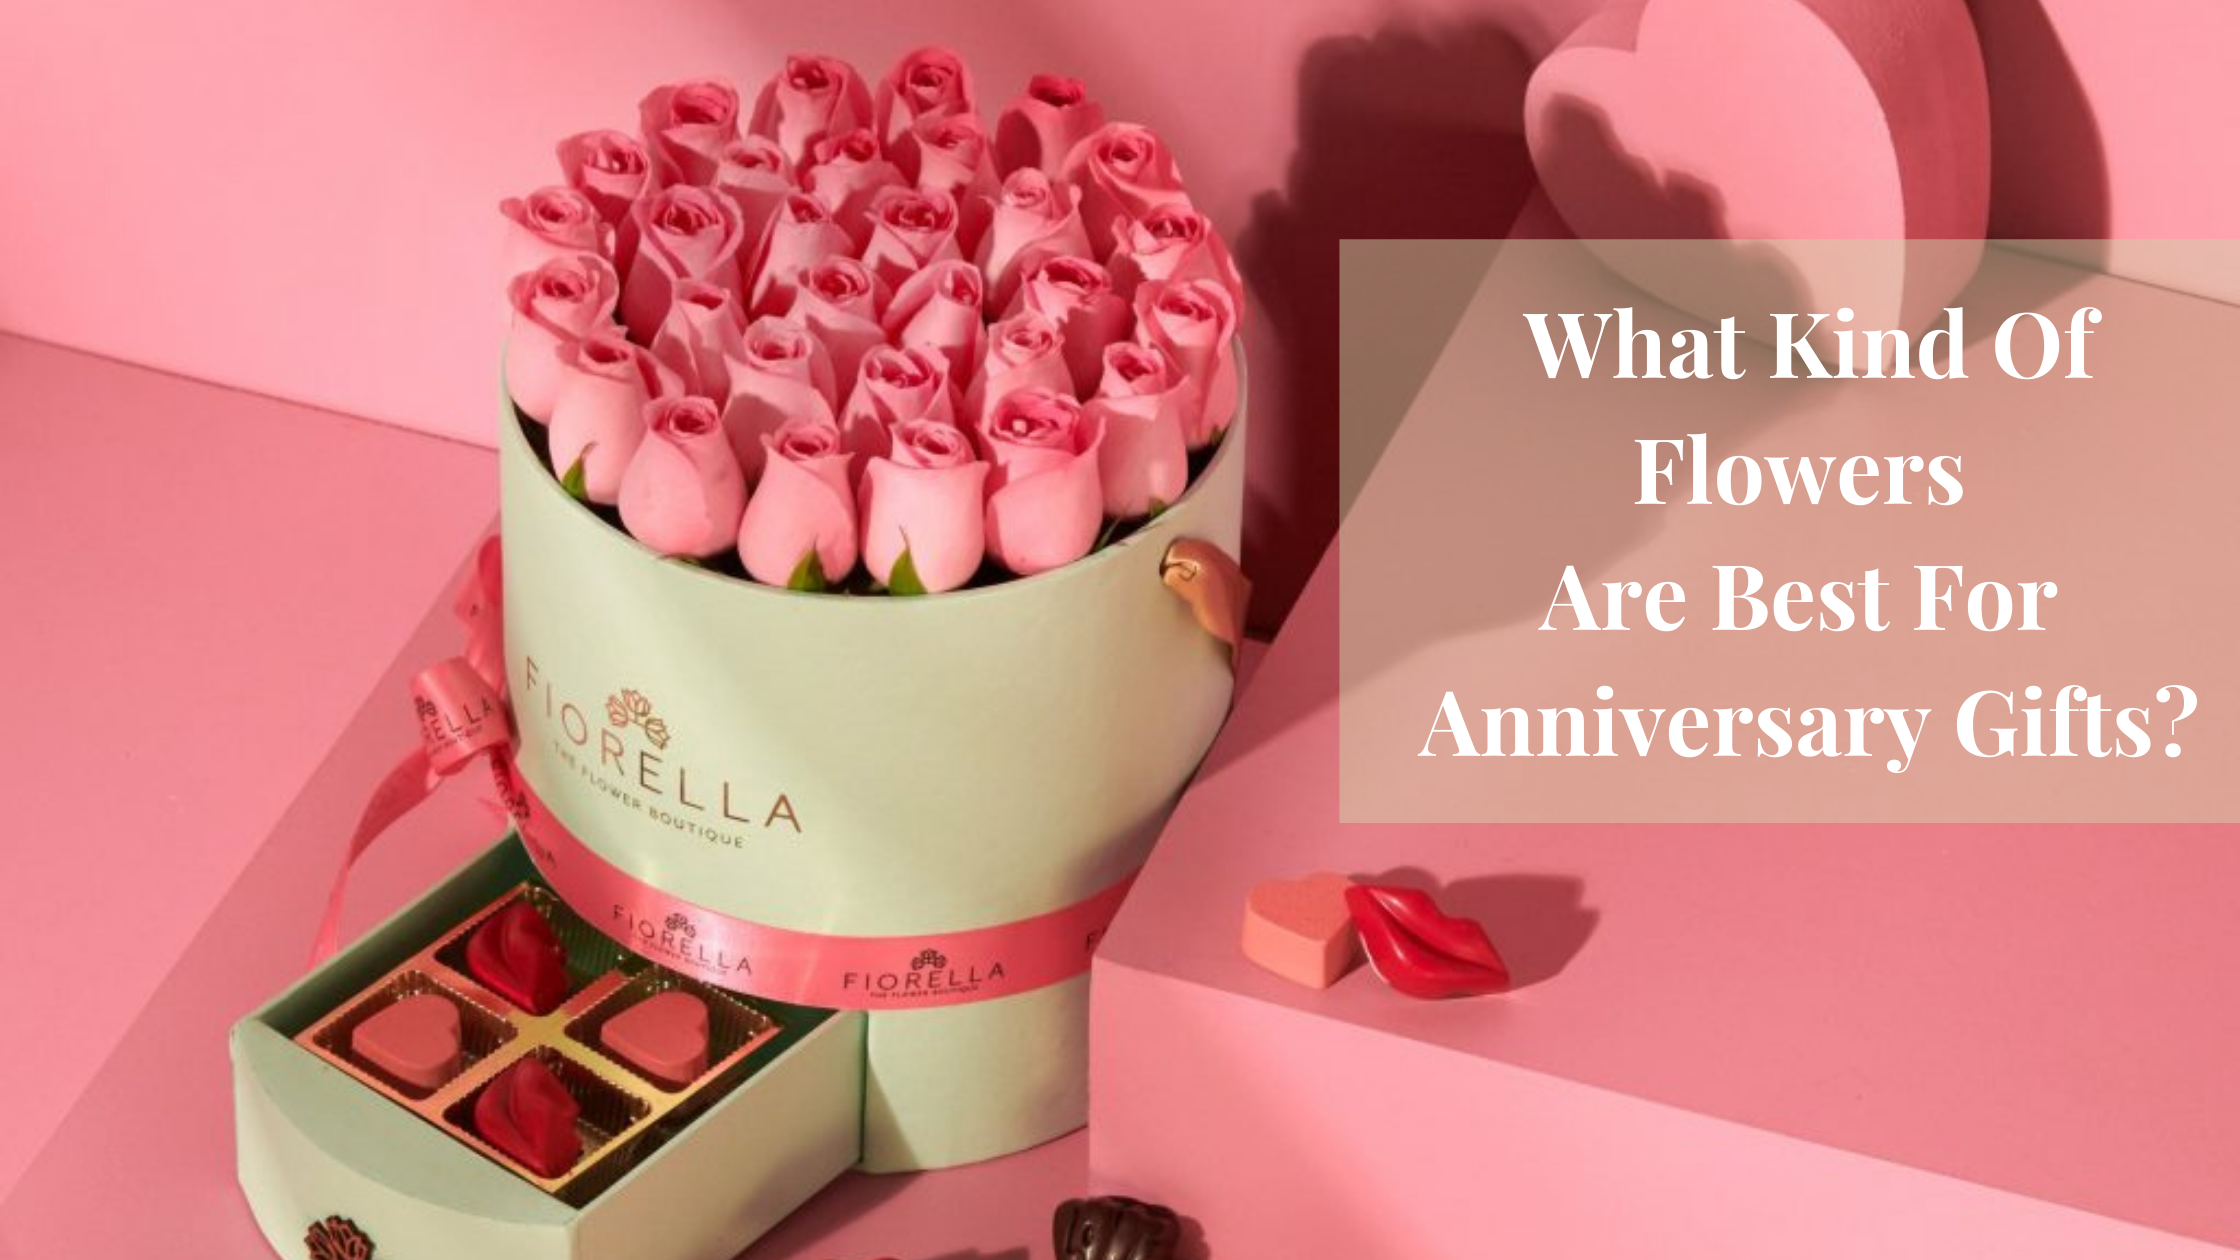 What Kind Of Flowers Are Best For Anniversary Gifts